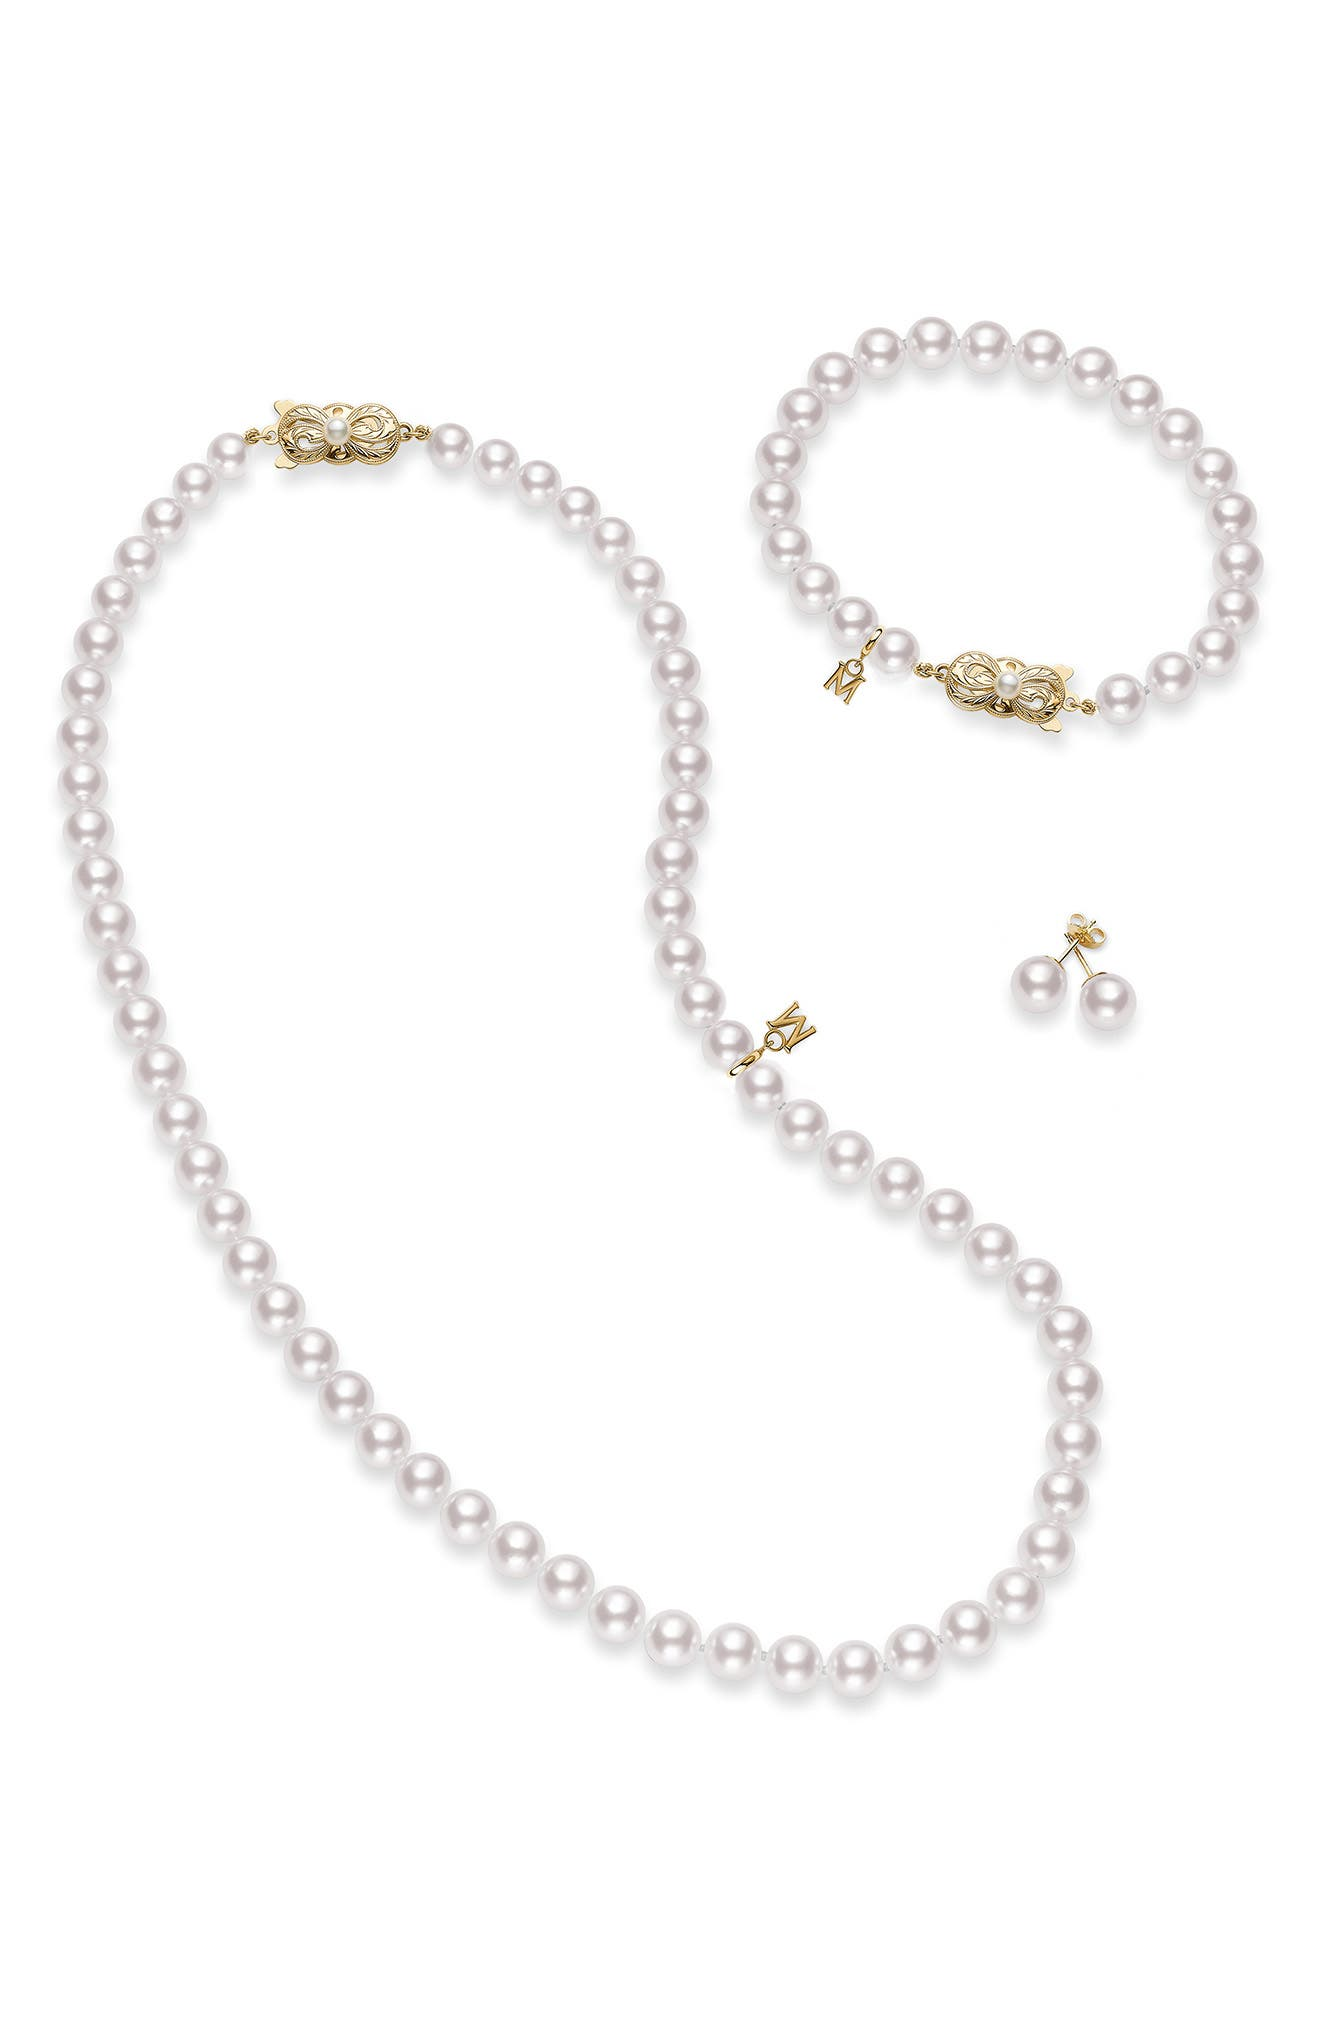 Essential Elements Akoya Cultured Pearl Necklace